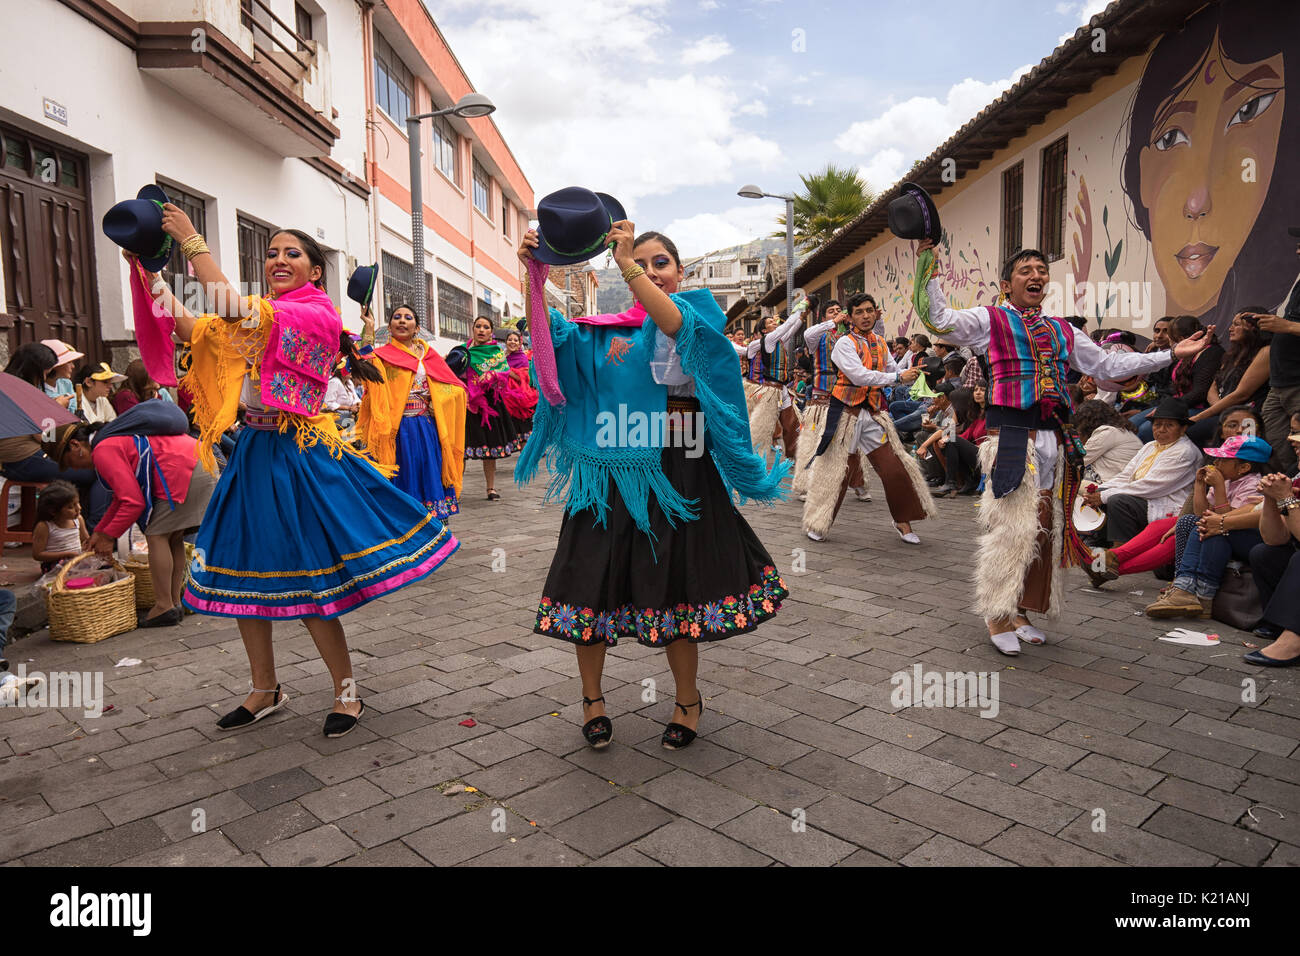 June 17, 2017 Pujili, Ecuador: dancers in brightly colored clothing performing at the Corpus Christi parade - Stock Image